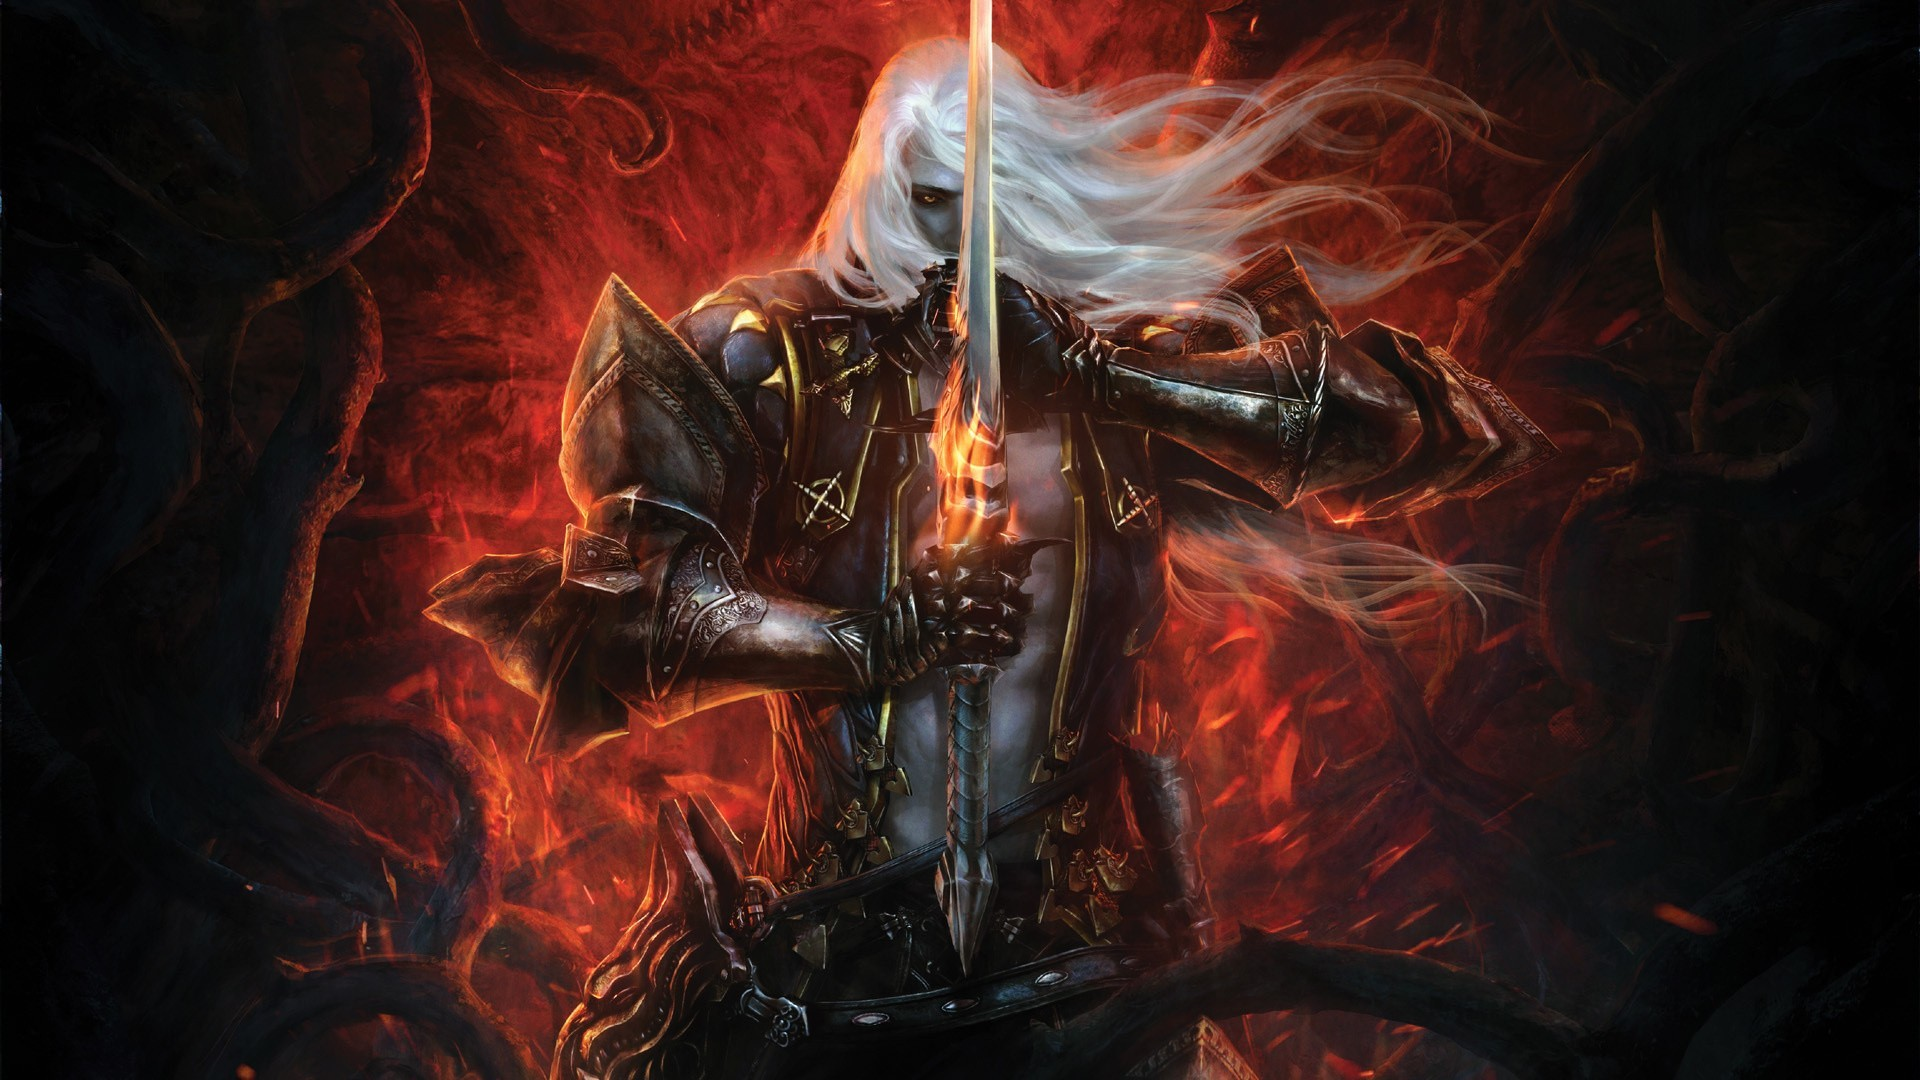 Res: 1920x1080, Alucard Wallpaper  Video Games Alucard Fantasy Art Armor  Castlevania Artwork on Alexander Anderson Wallpaper Images